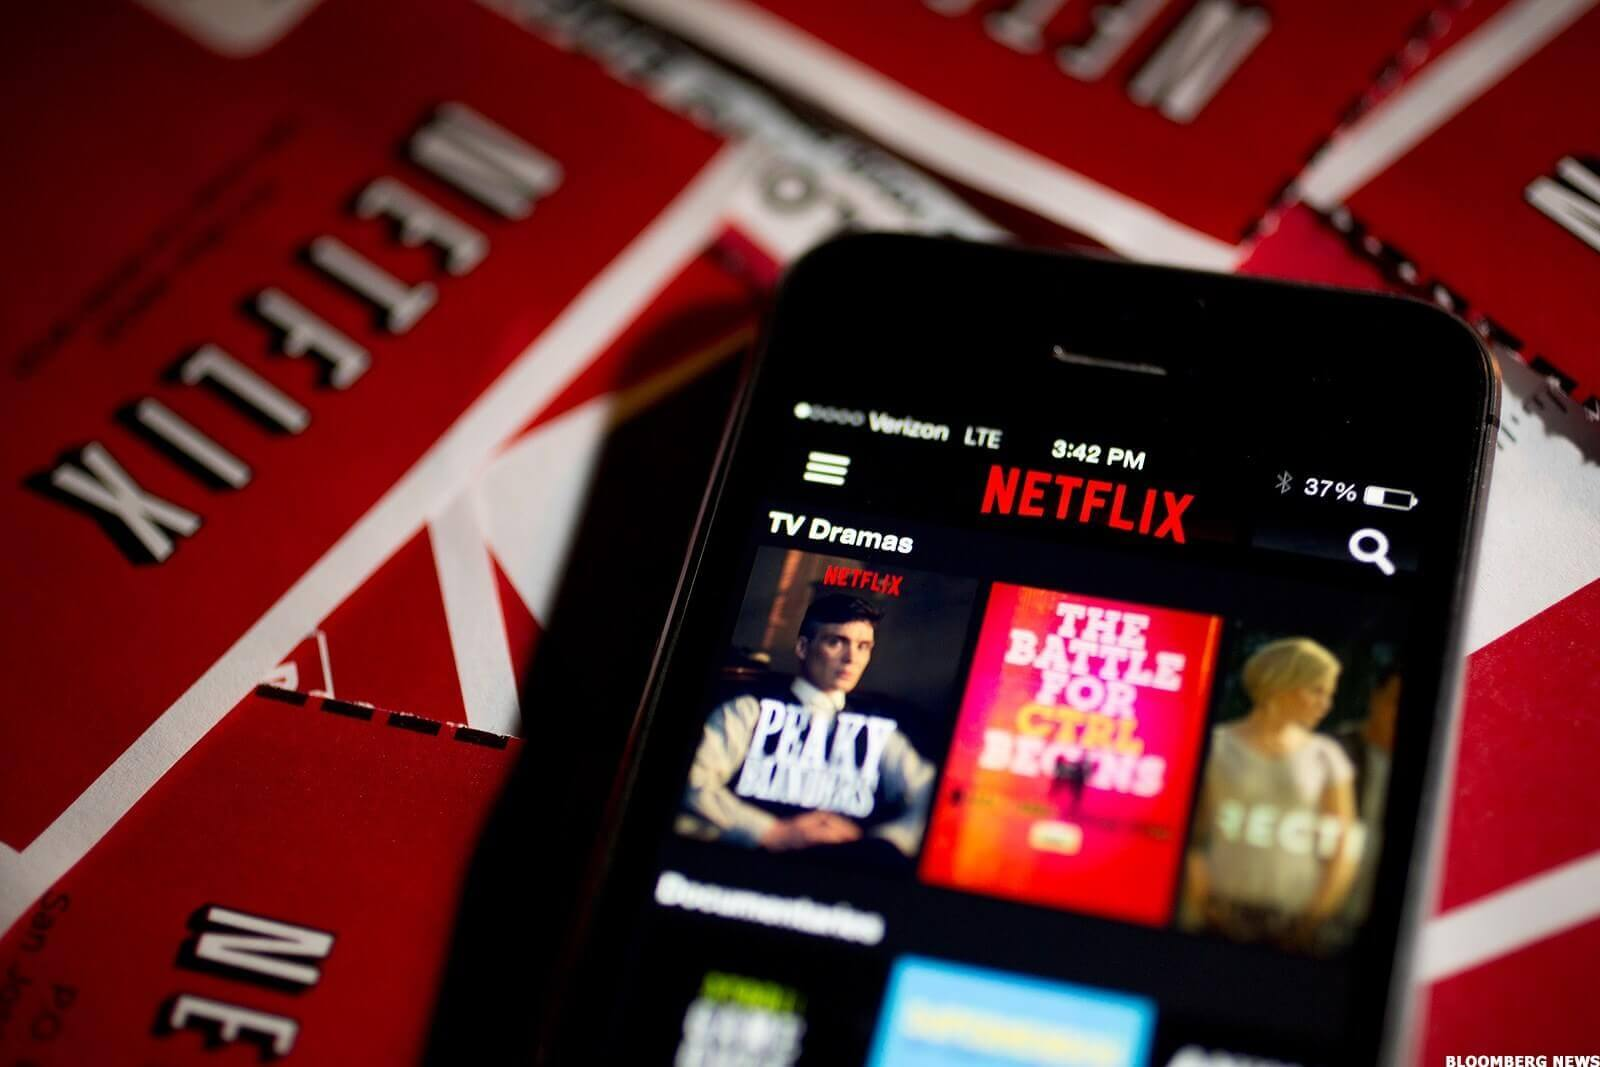 Netflix dodges Apple's App Store revenue cut by ending in-app subscription purchases